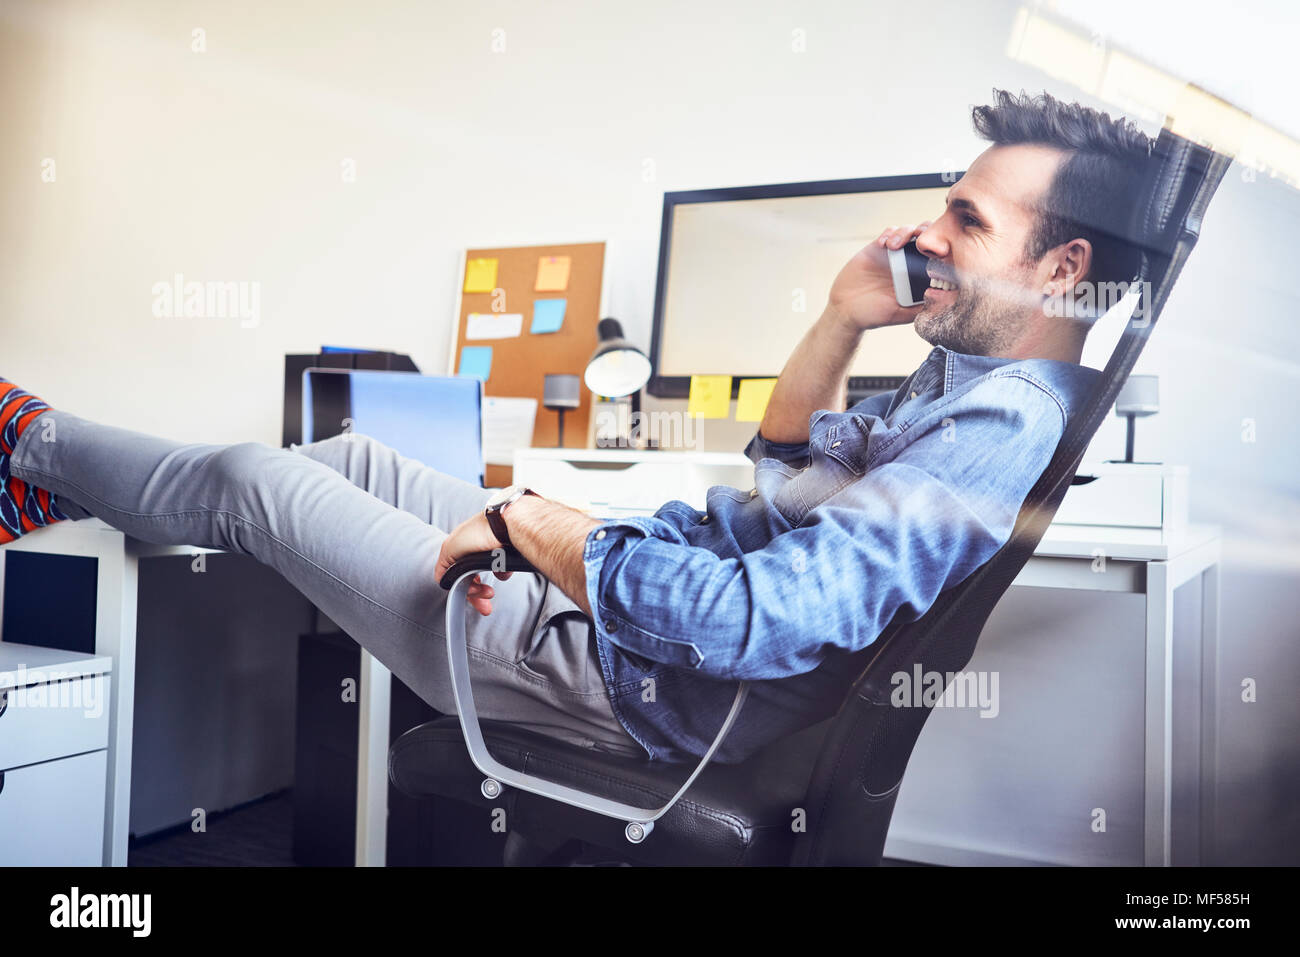 Ambiance man sitting at desk in office talking on cell phone Banque D'Images